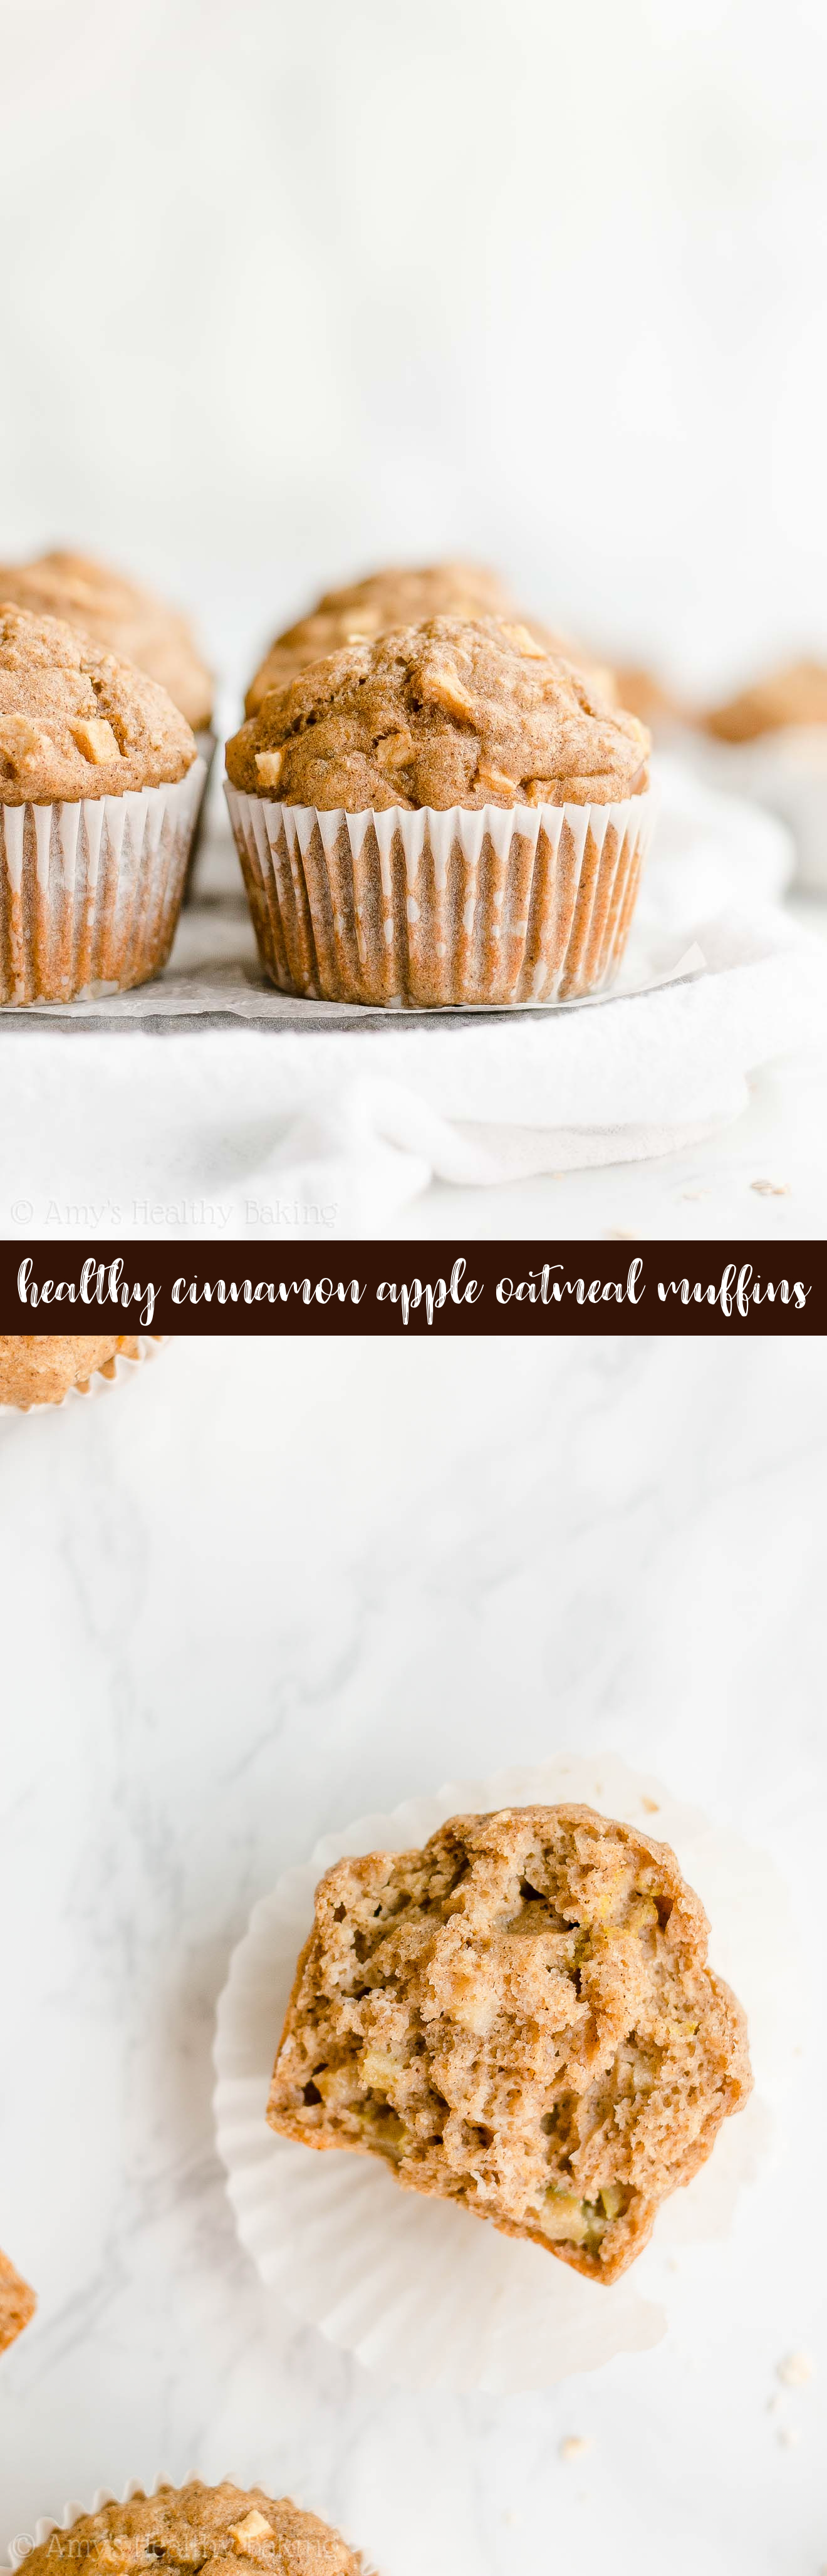 Best Ever Easy Healthy Greek Yogurt Cinnamon Apple Oatmeal Muffins